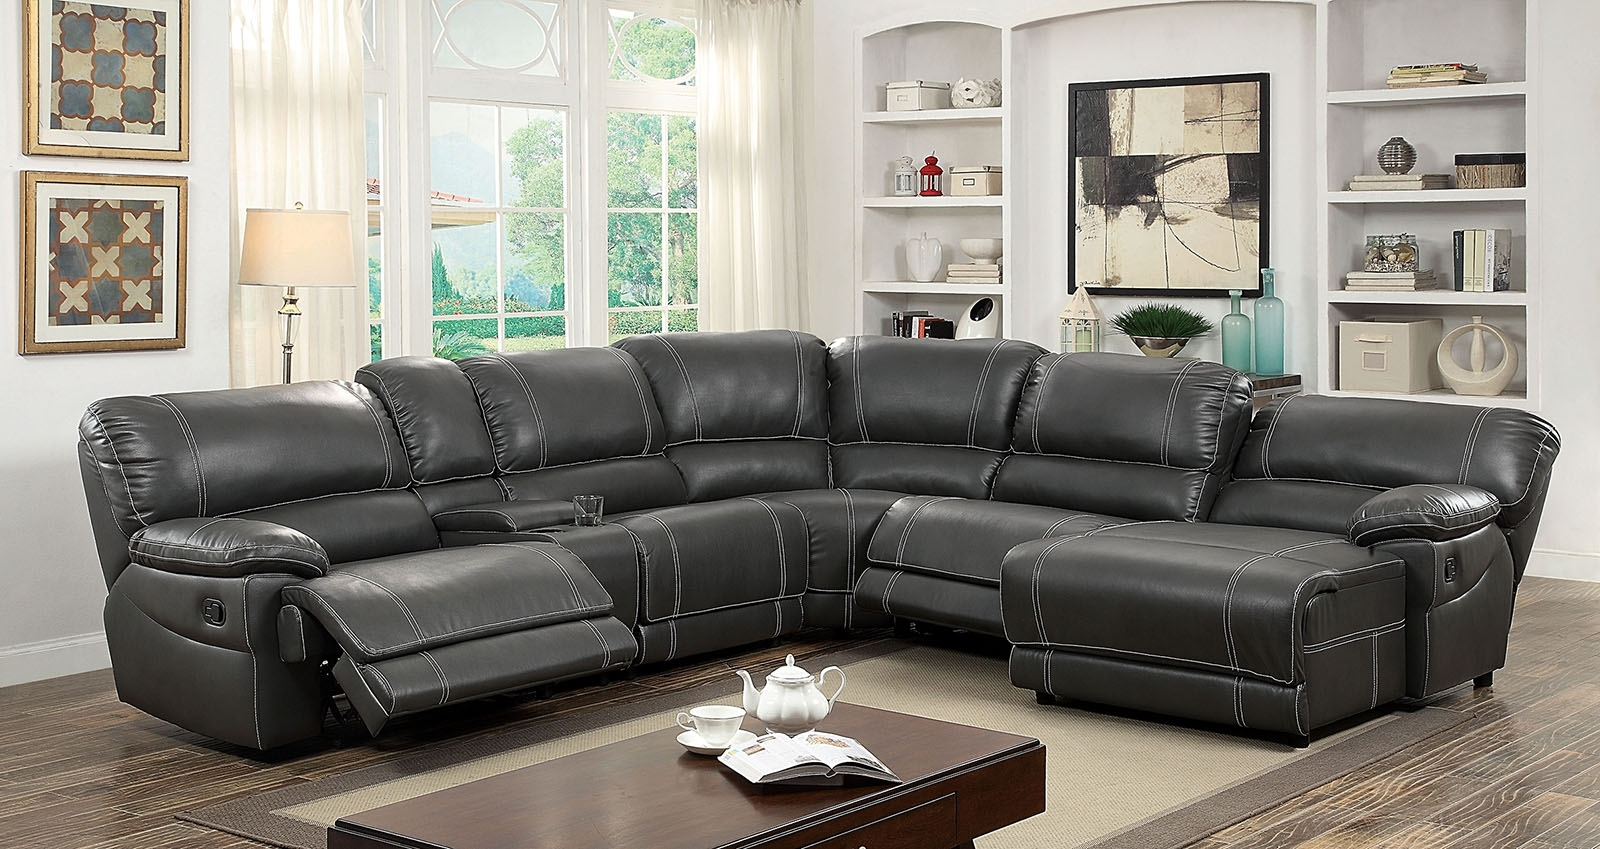 2019 Furniture Of America 6131gy Gray Reclining Chaise Console For Sectional Sofas With Consoles (View 14 of 20)